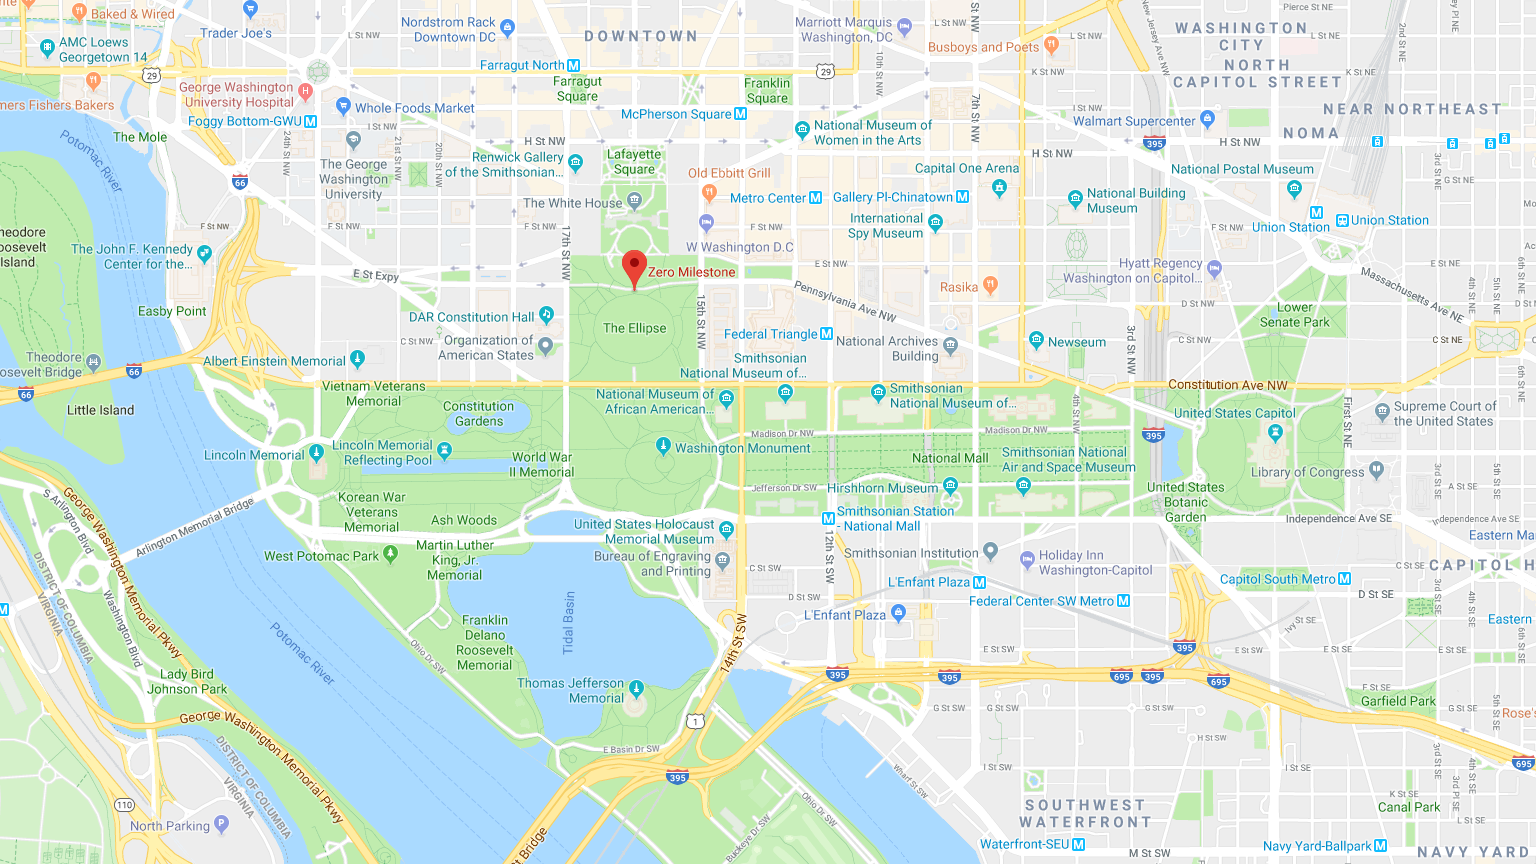 many of the attractions are located around the national mall which extends from the lincoln memorial to the library of congress all you need to begin your